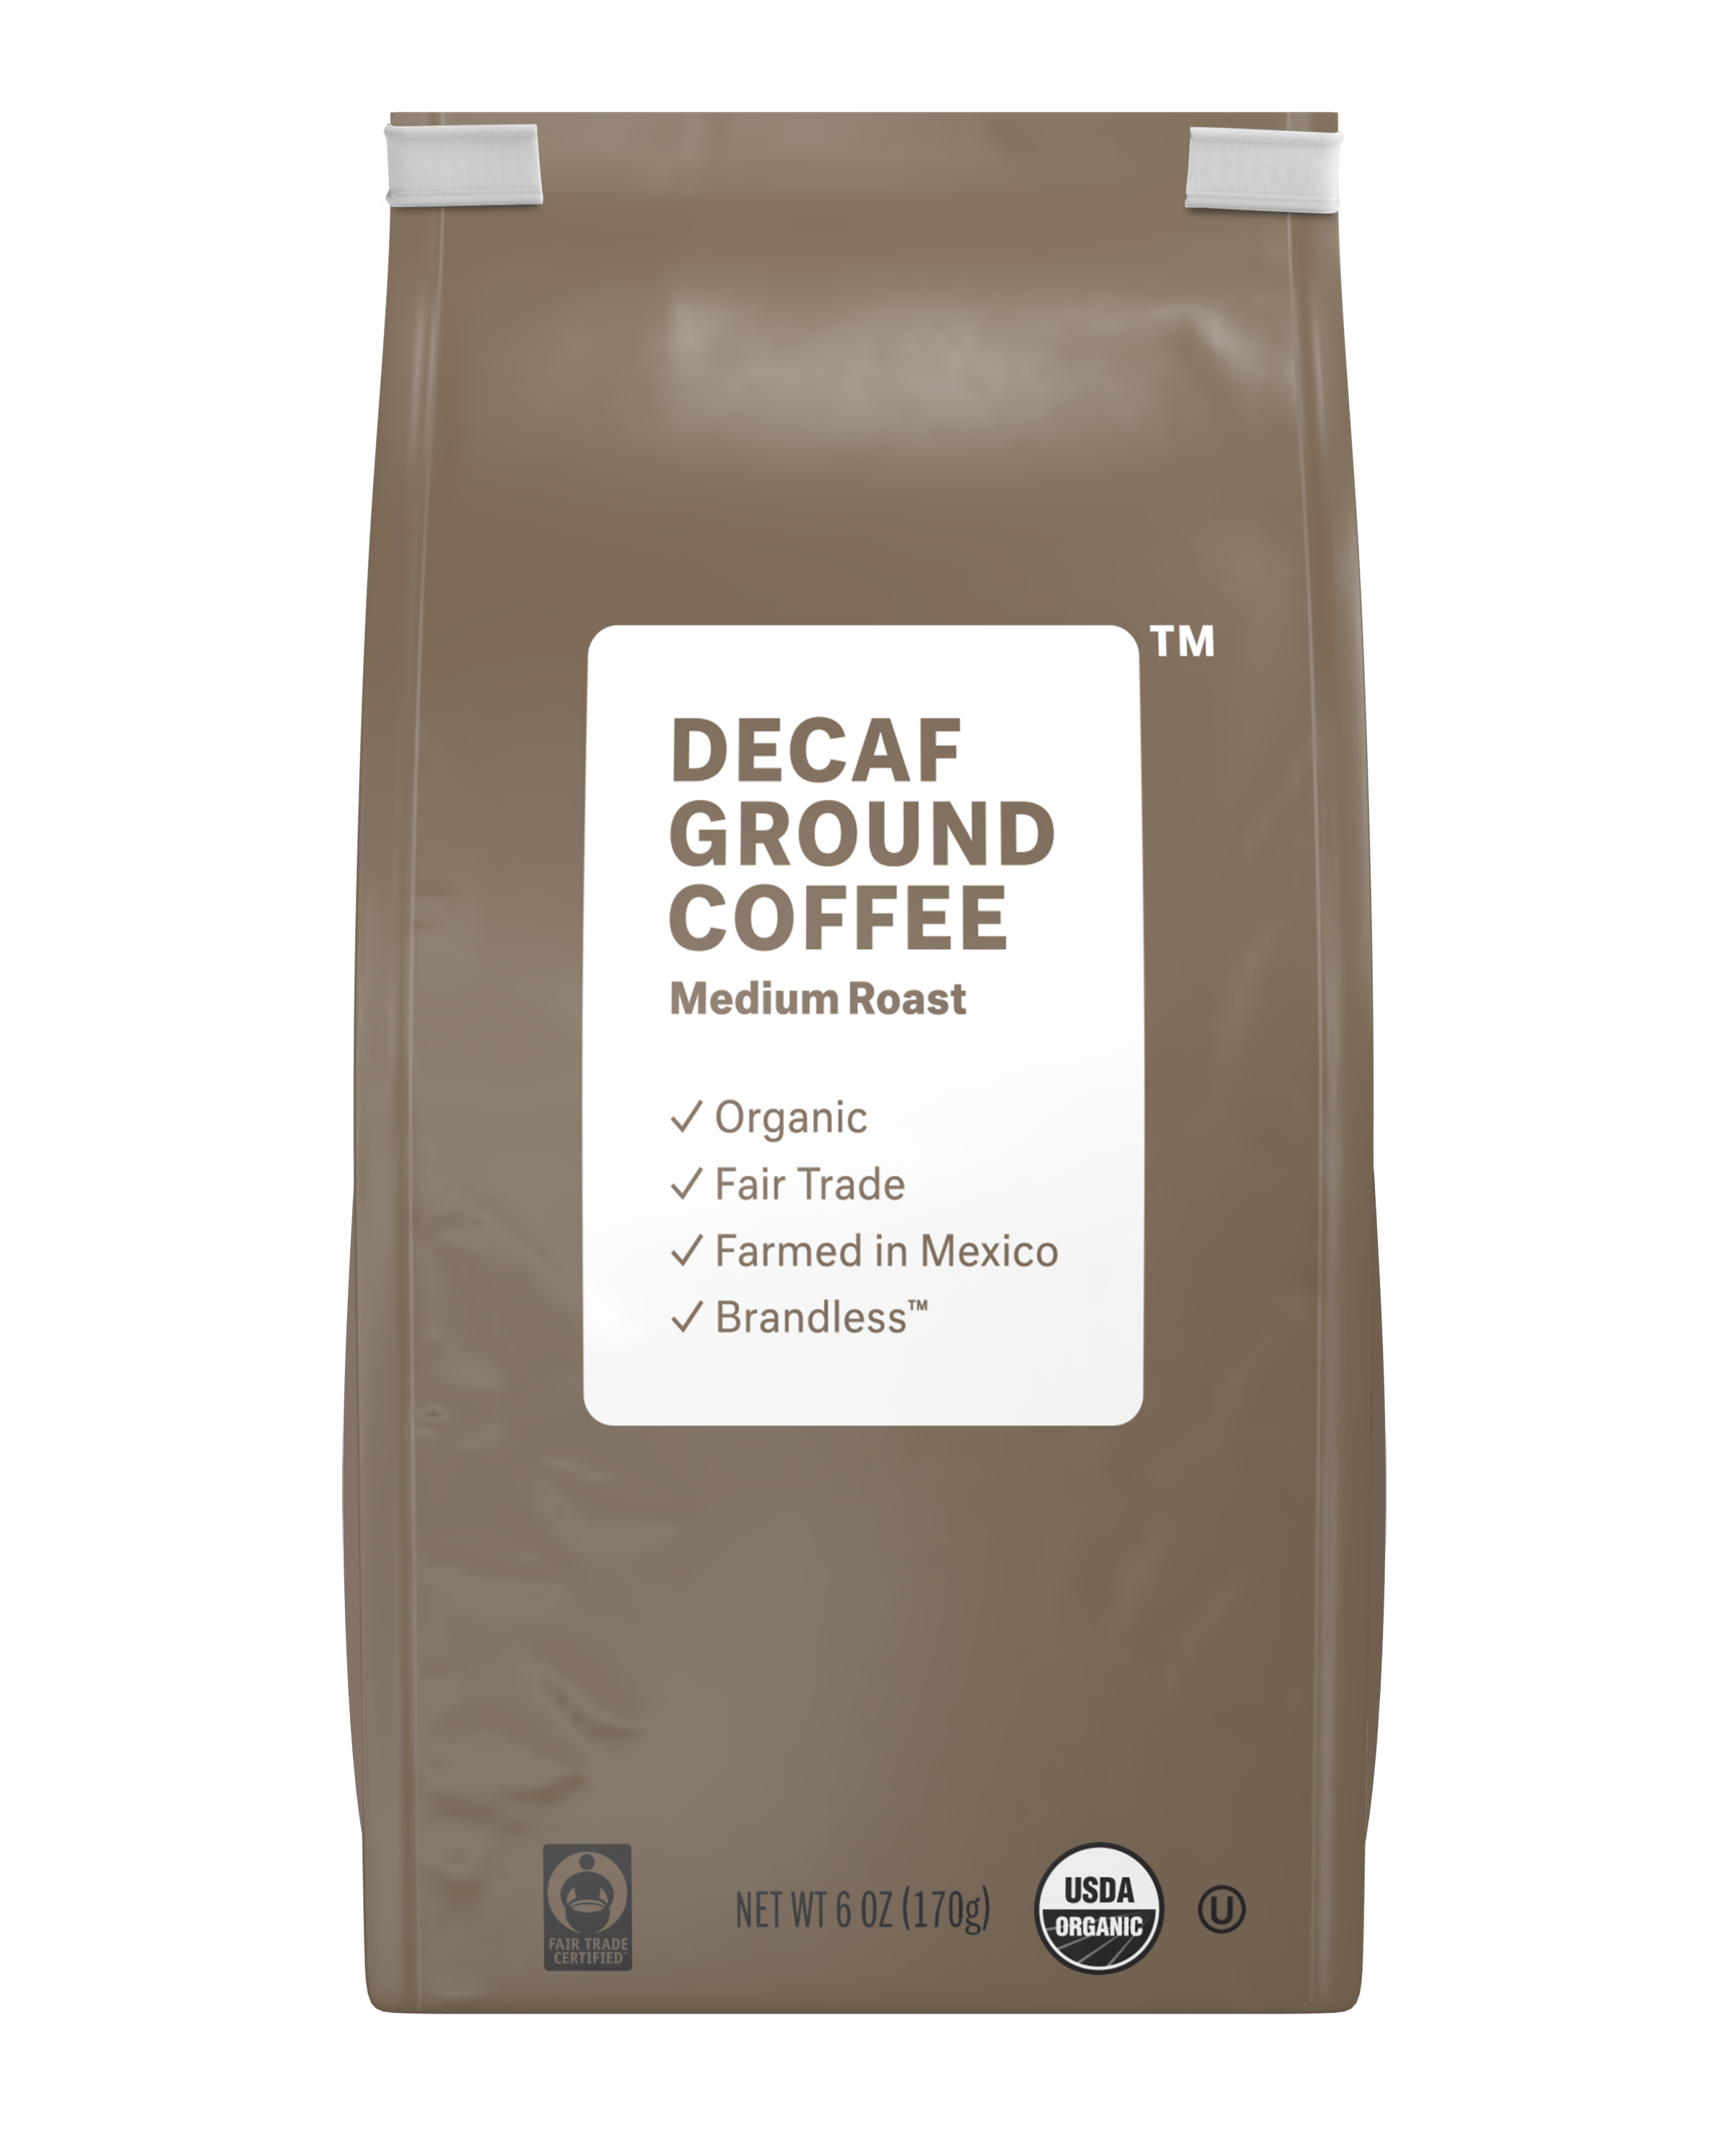 Brandless: Decaf Ground Coffee, Medium Roast